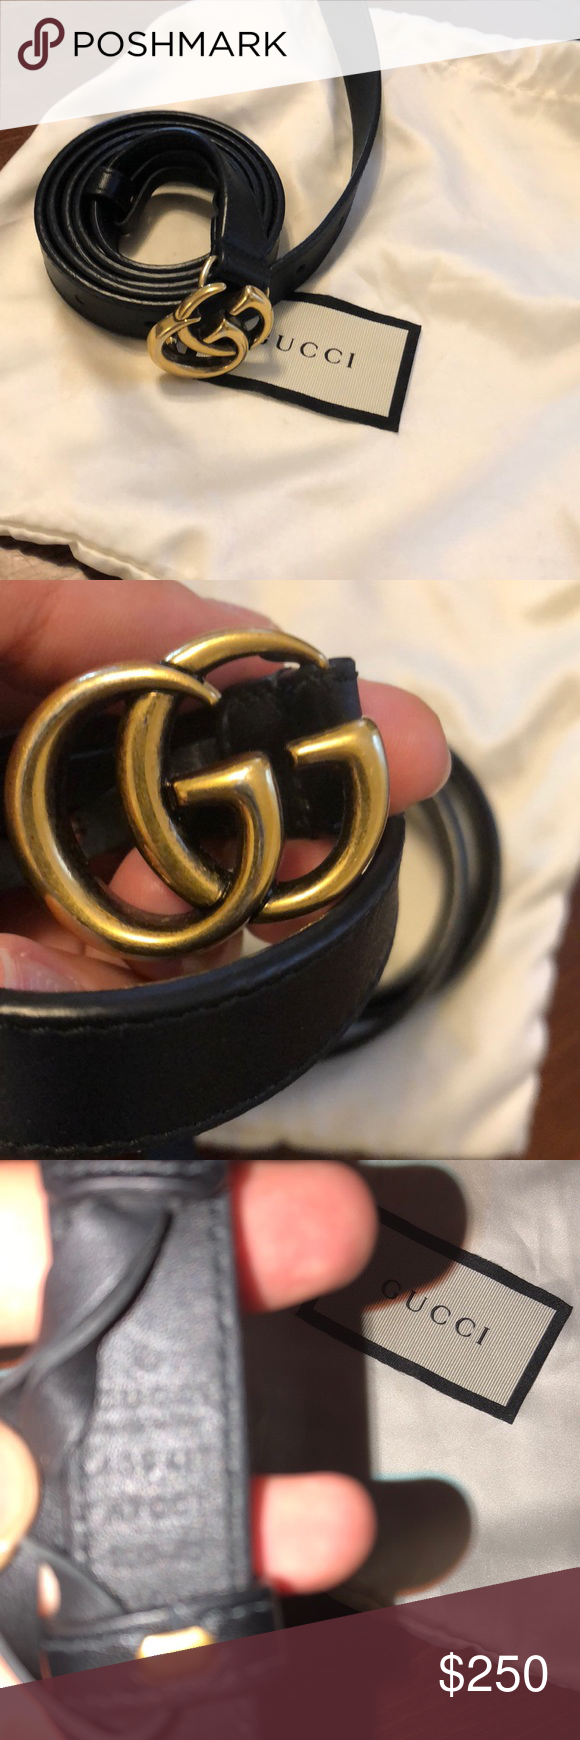 a23727d1175 Gucci marmont belt Size 38. Comes with dustbag. Gucci Accessories Belts